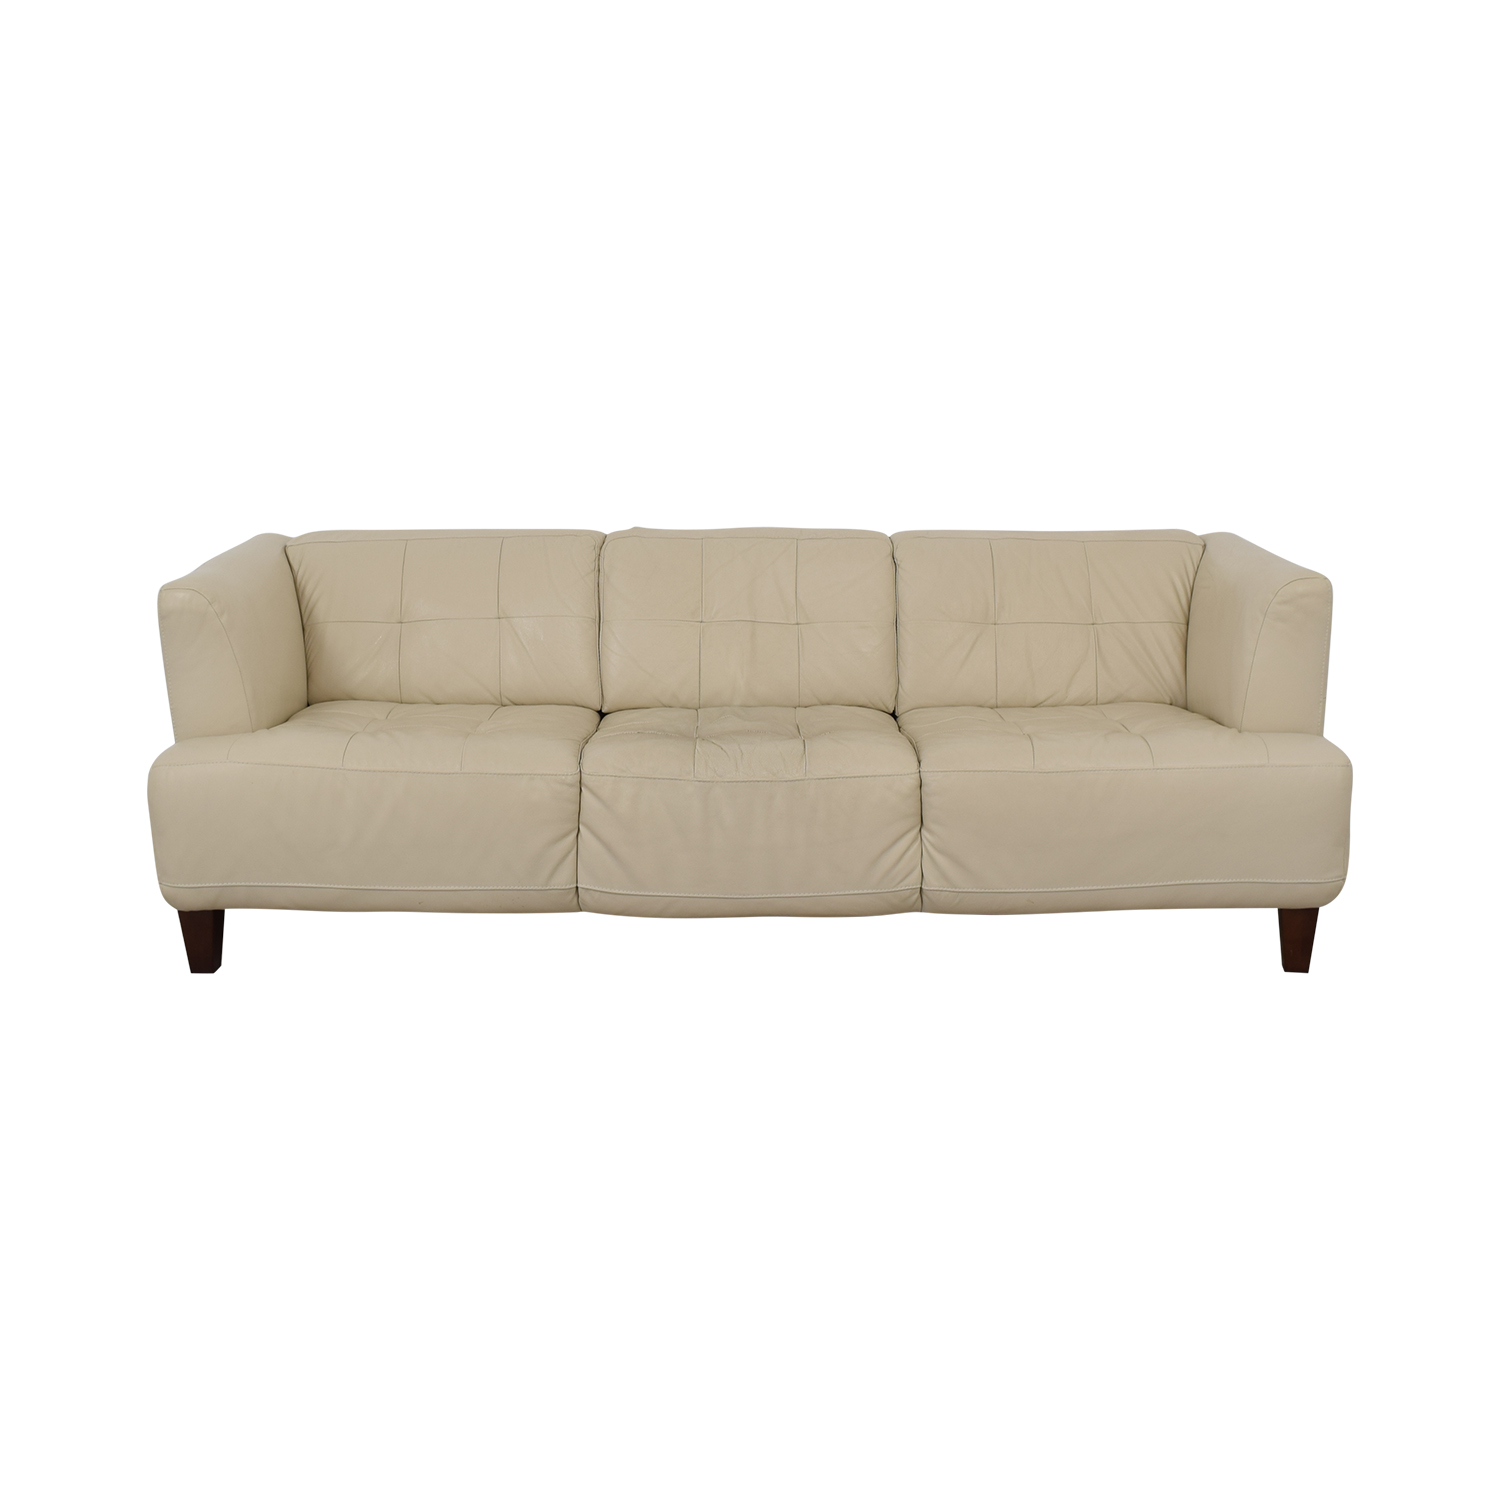 Chateau D'Ax Chateau D'Ax Leather Sofa discount